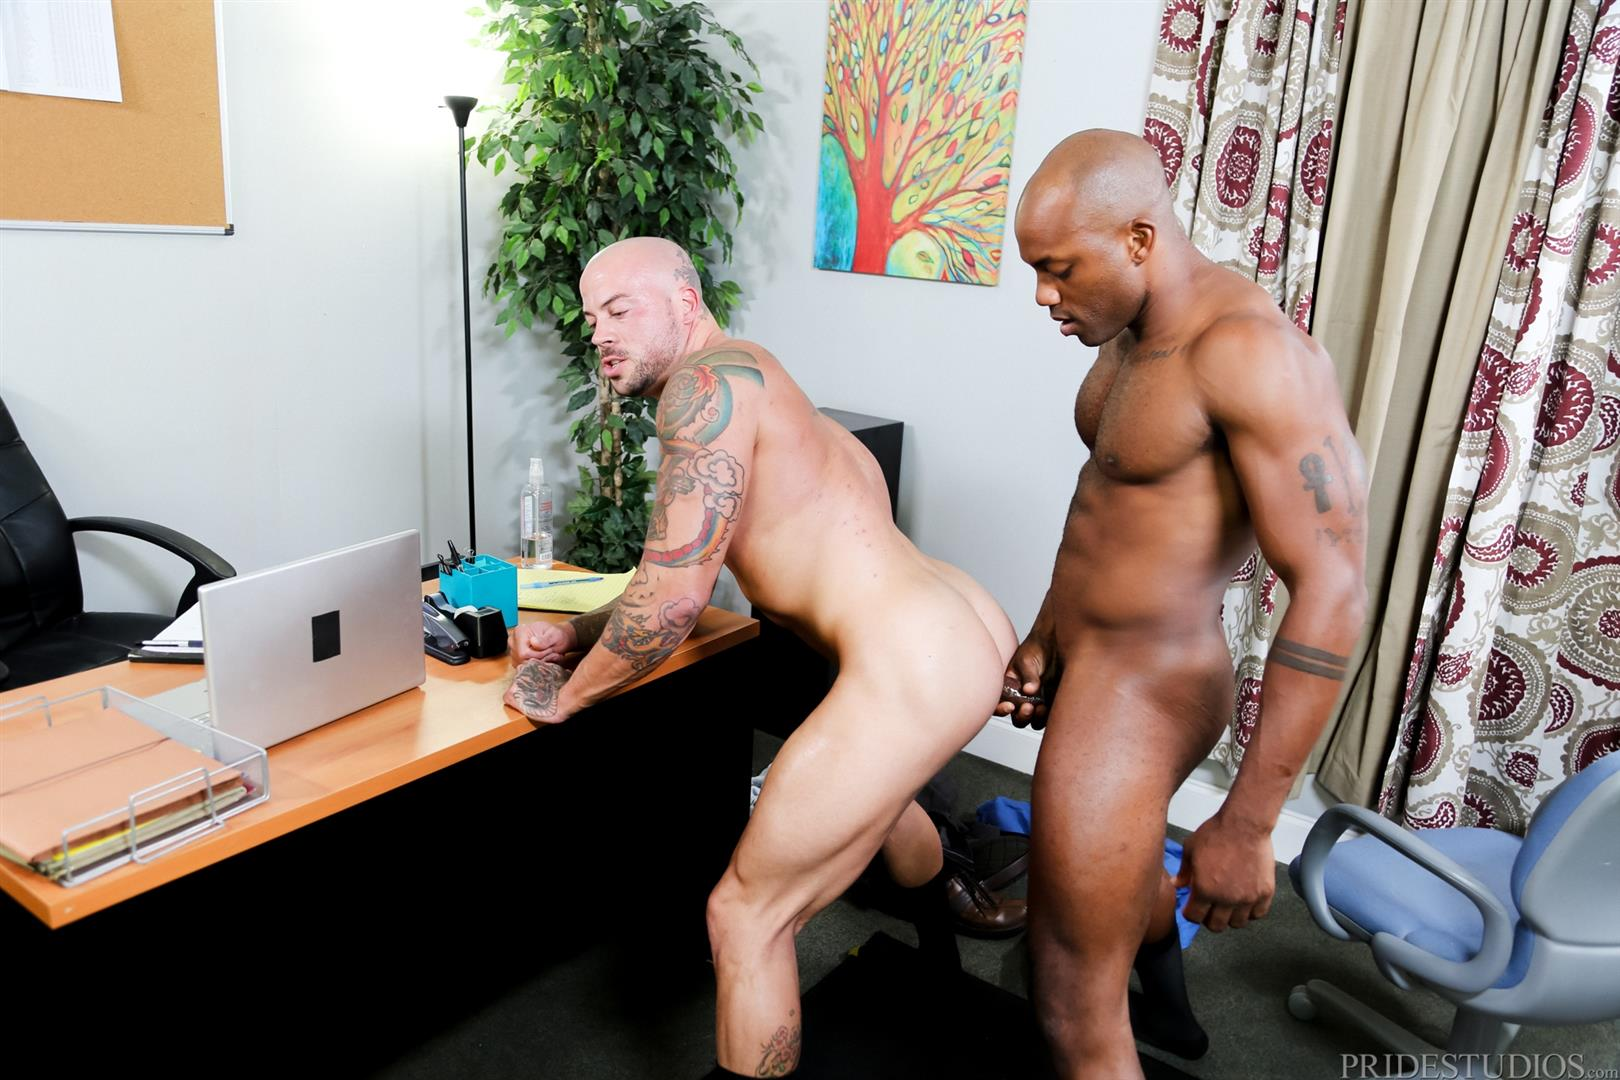 Sean-Duran-and-Osiris-Blade-Extra-Big-Dicks-Black-Cock-Interracial-Amateur-Gay-Porn-15 White Muscle Hunk Takes A Big Black Cock Up The Ass During A Job Interview